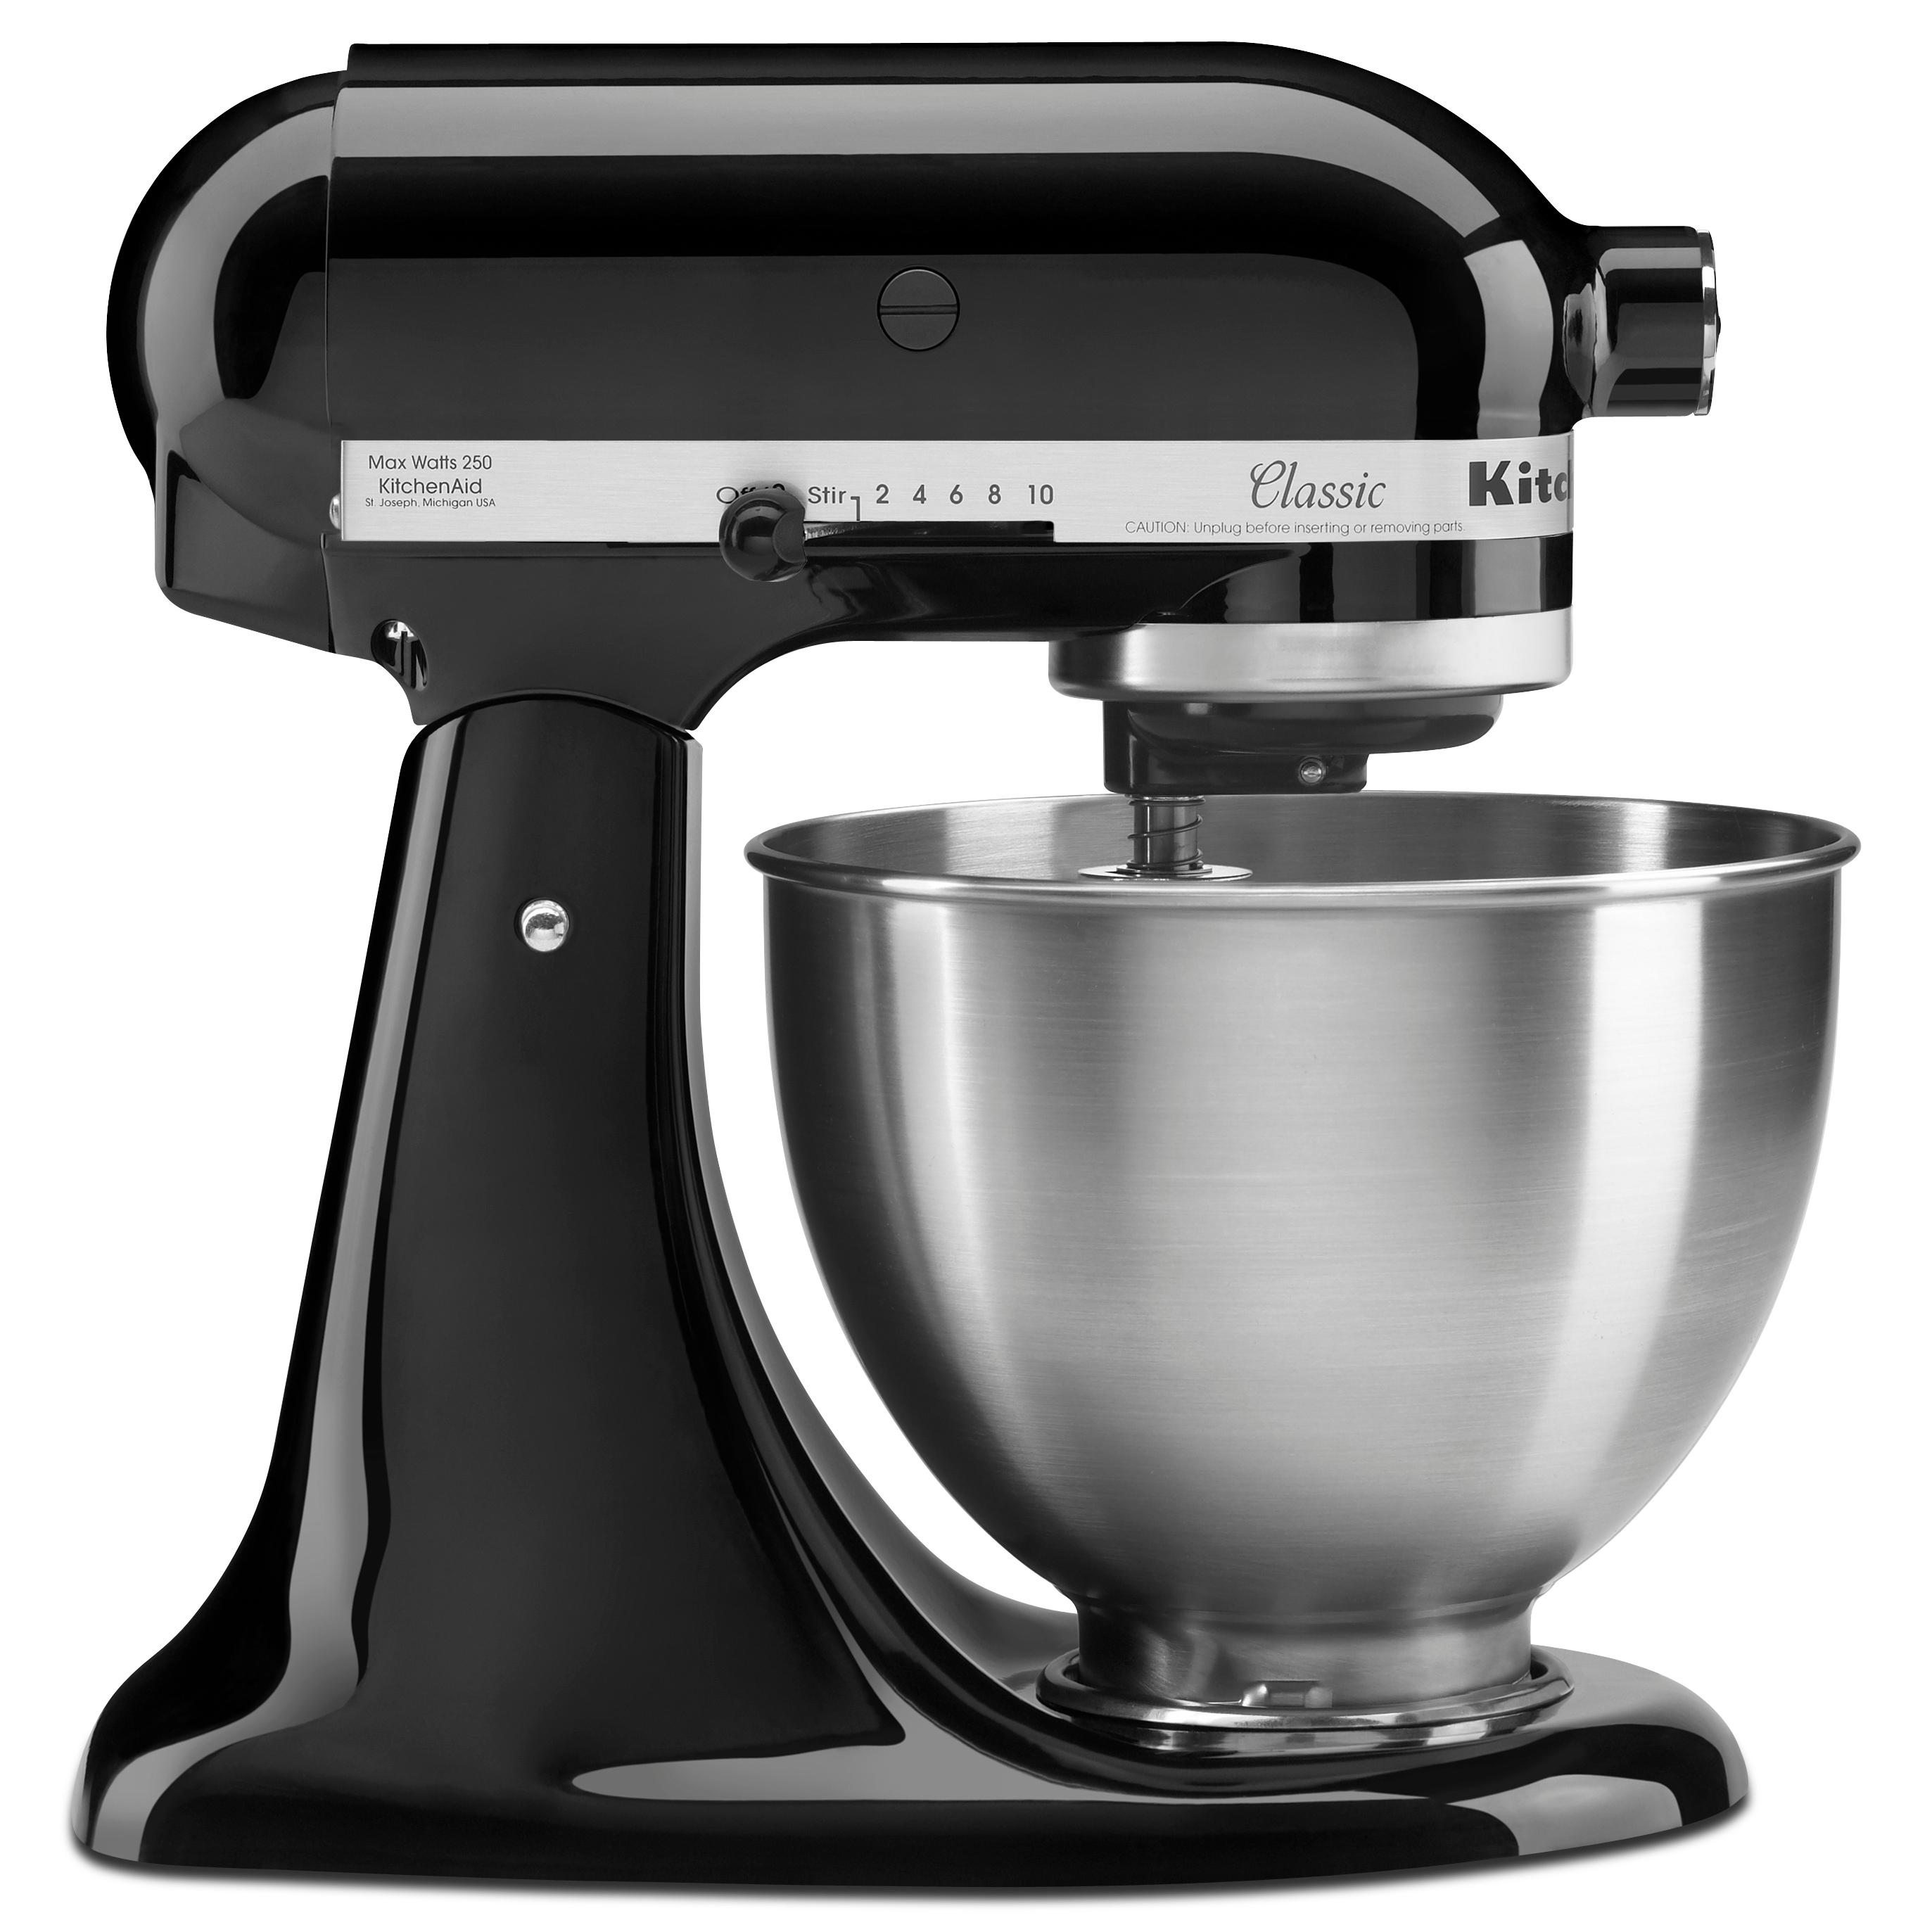 Kitchenaid k45sswh classic 4 5 quart bowl stand mixer for Kitchenaid f series